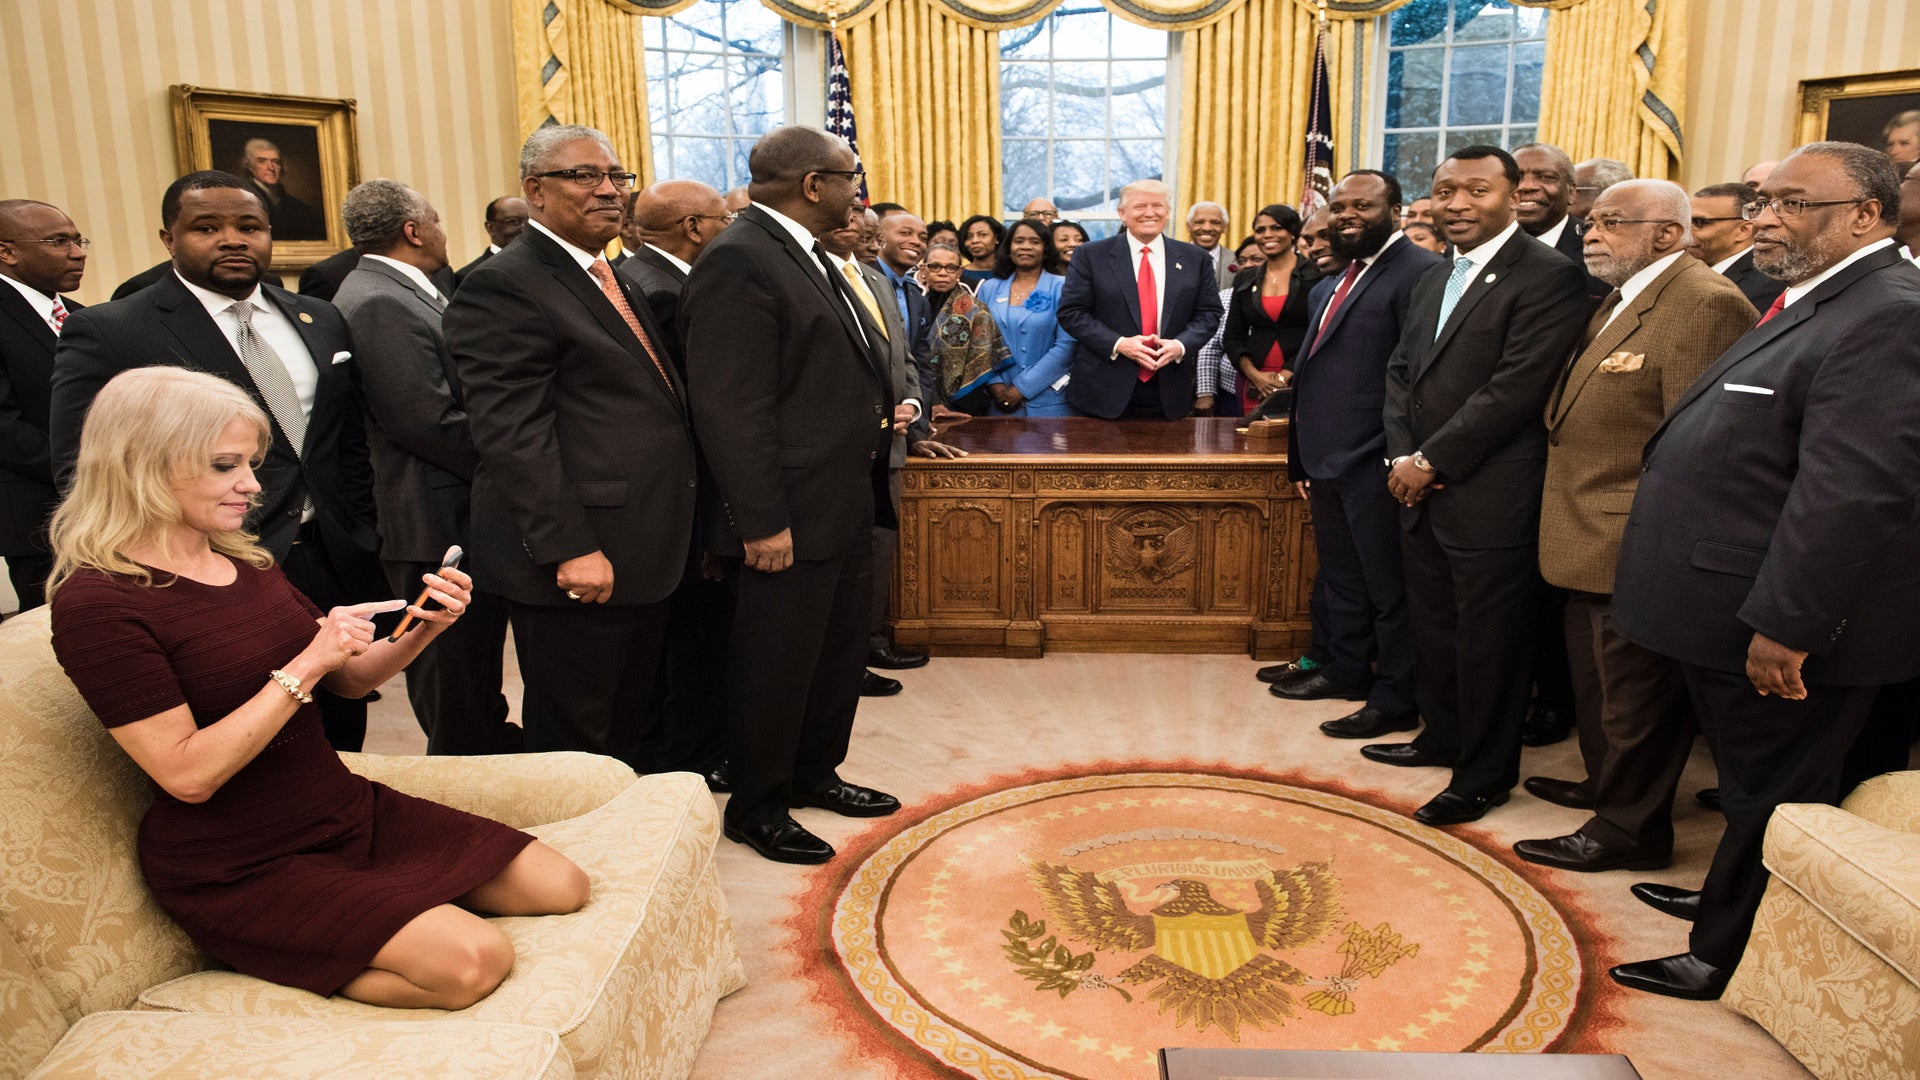 Kellyanne Conway Gets Dragged for Sitting On Oval Office Couch Like a Child